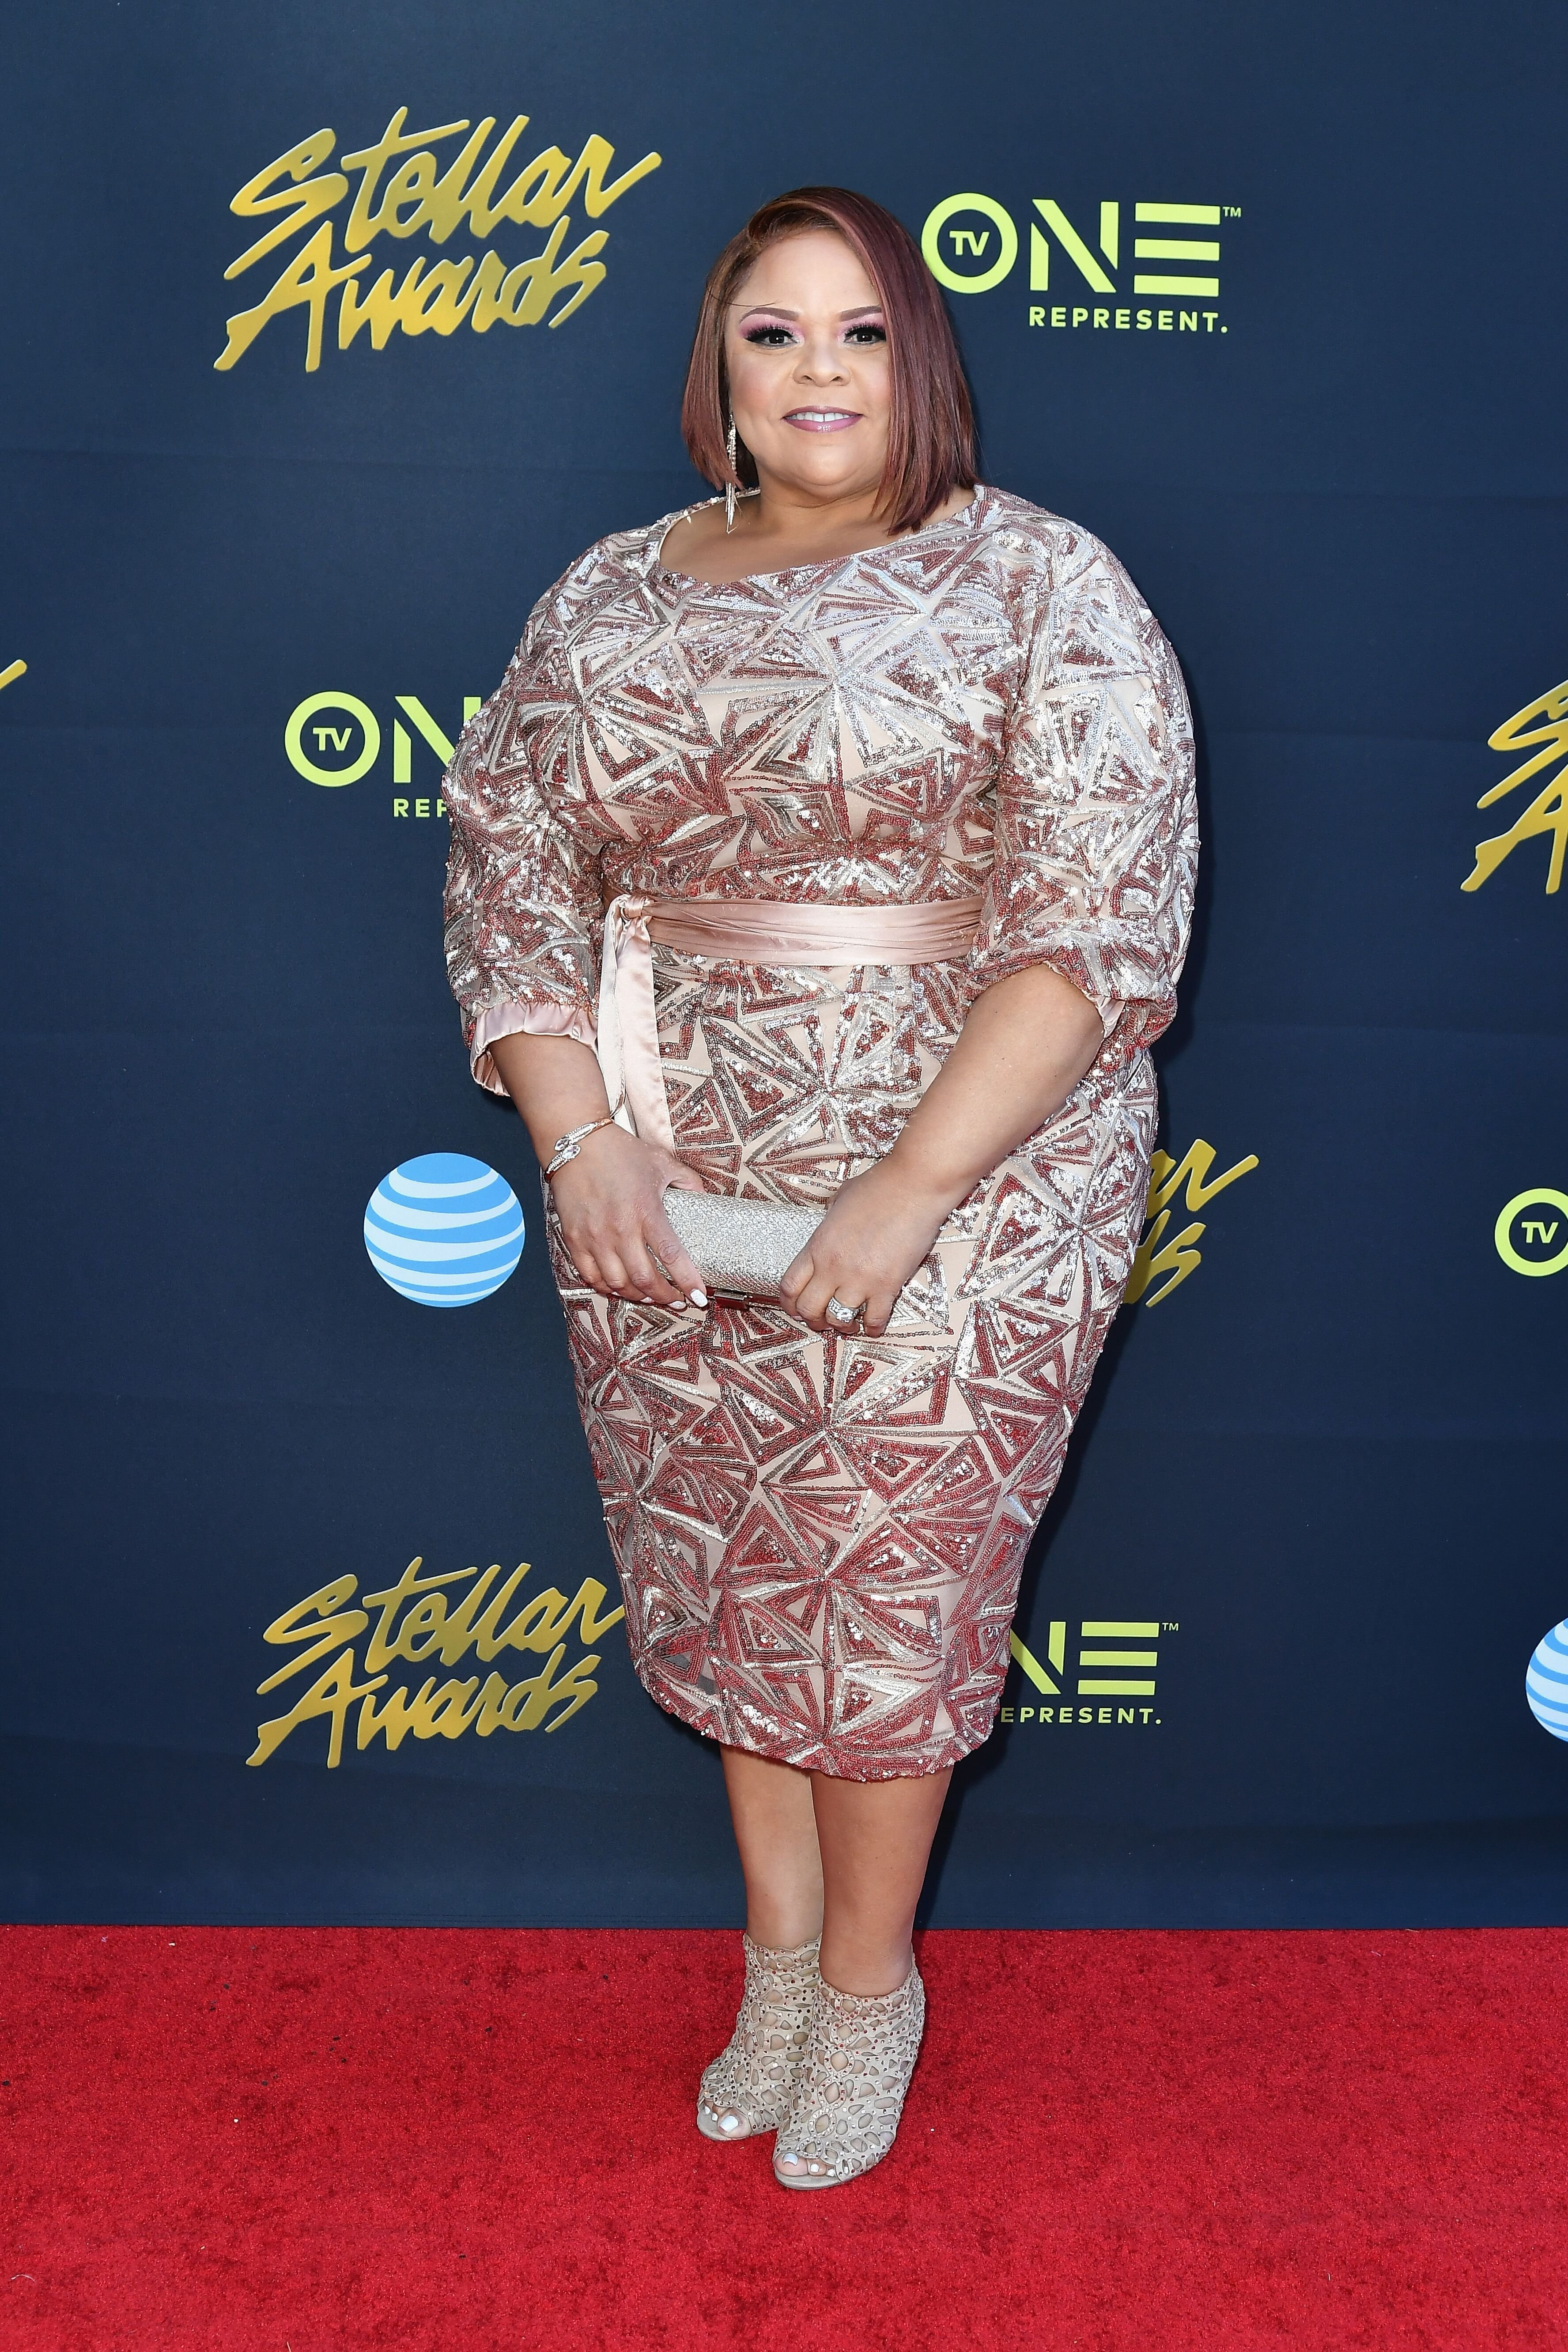 Tamela Mann at the Stellar Gospel Music Awards in March 2018/ Source: Getty Images